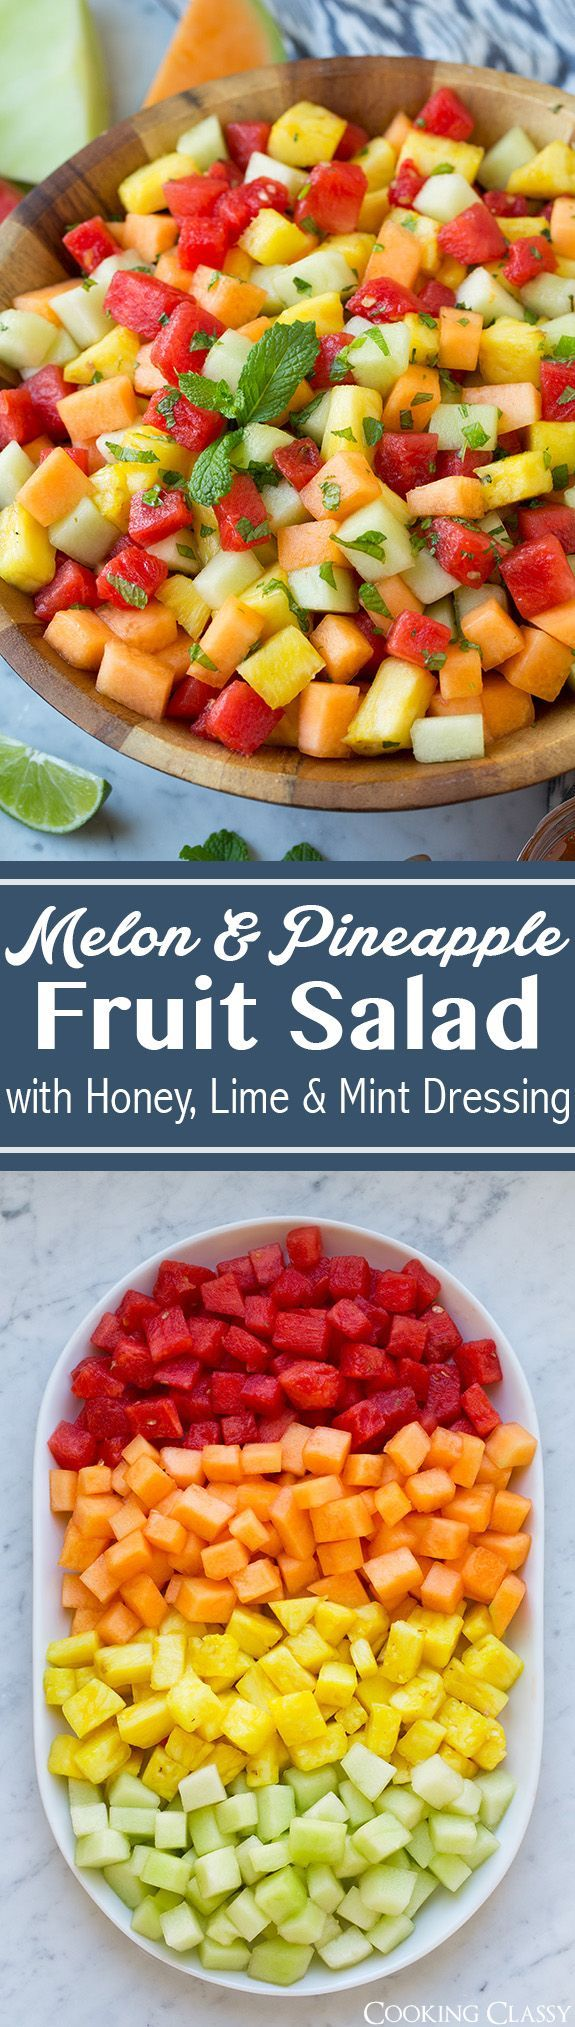 Colorado Harvest of the Month - September #Melons Melon Fruit Salad with Honey, Lime and Mint Dressing